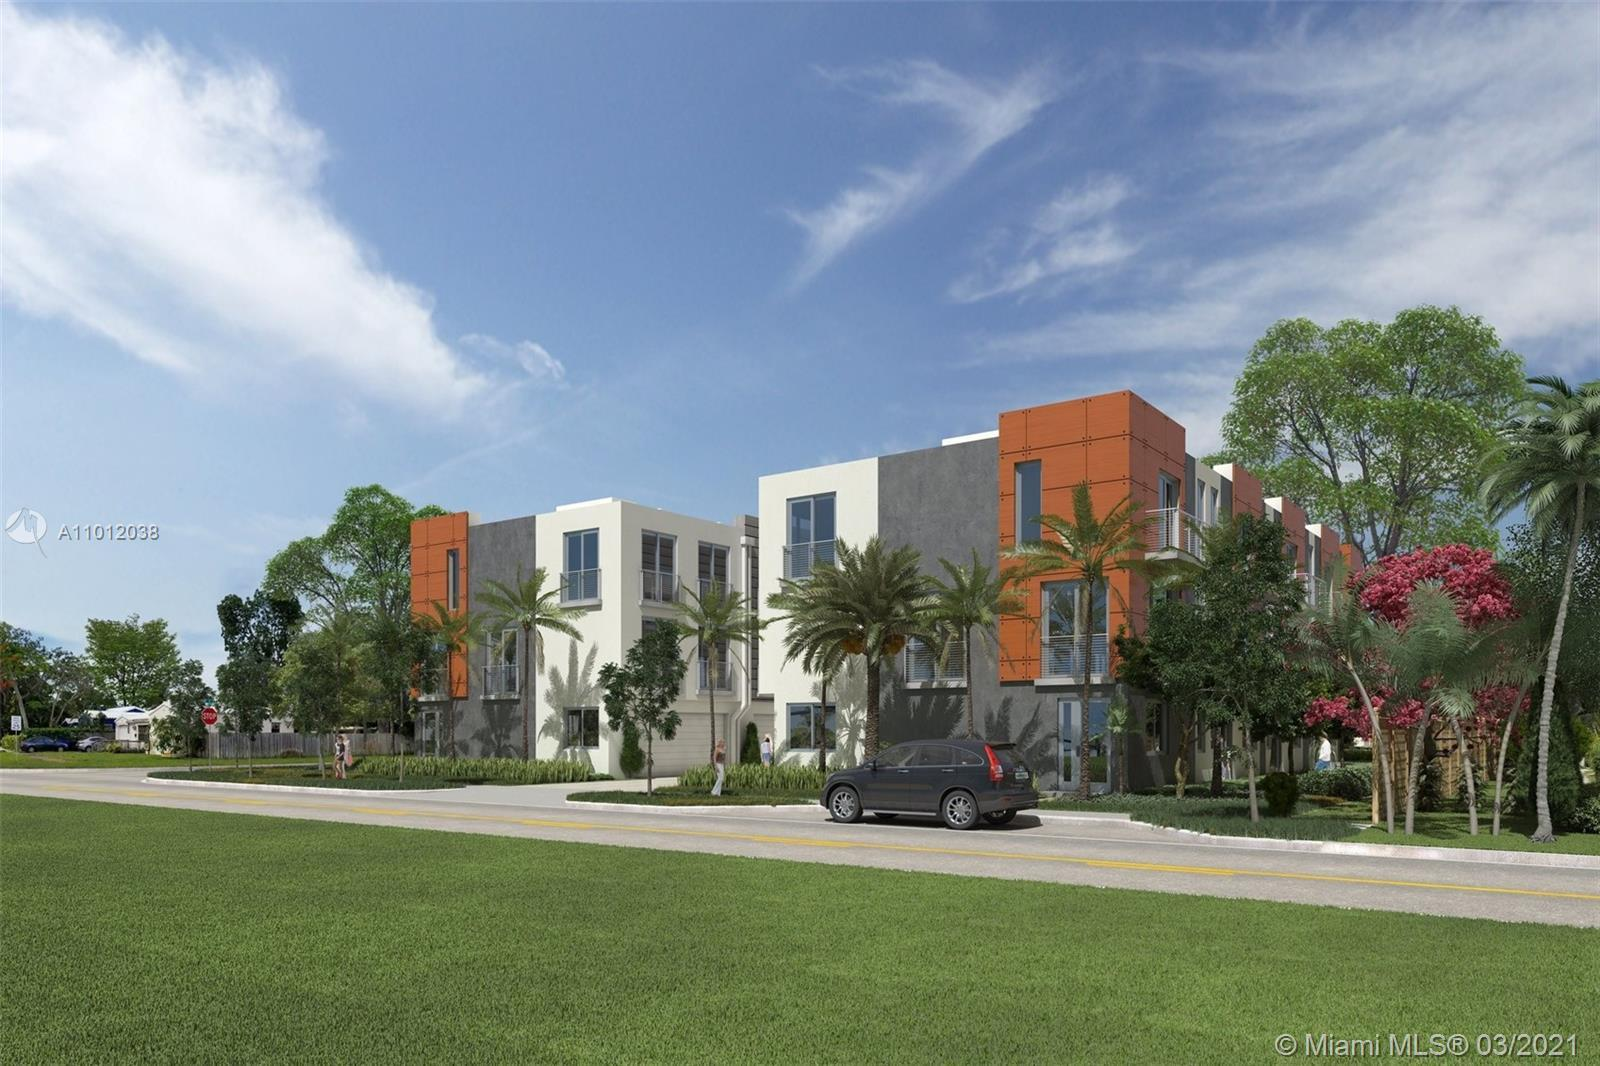 Introducing a new standard of living in the heart of downtown Fort Lauderdale and Victoria Park. 912